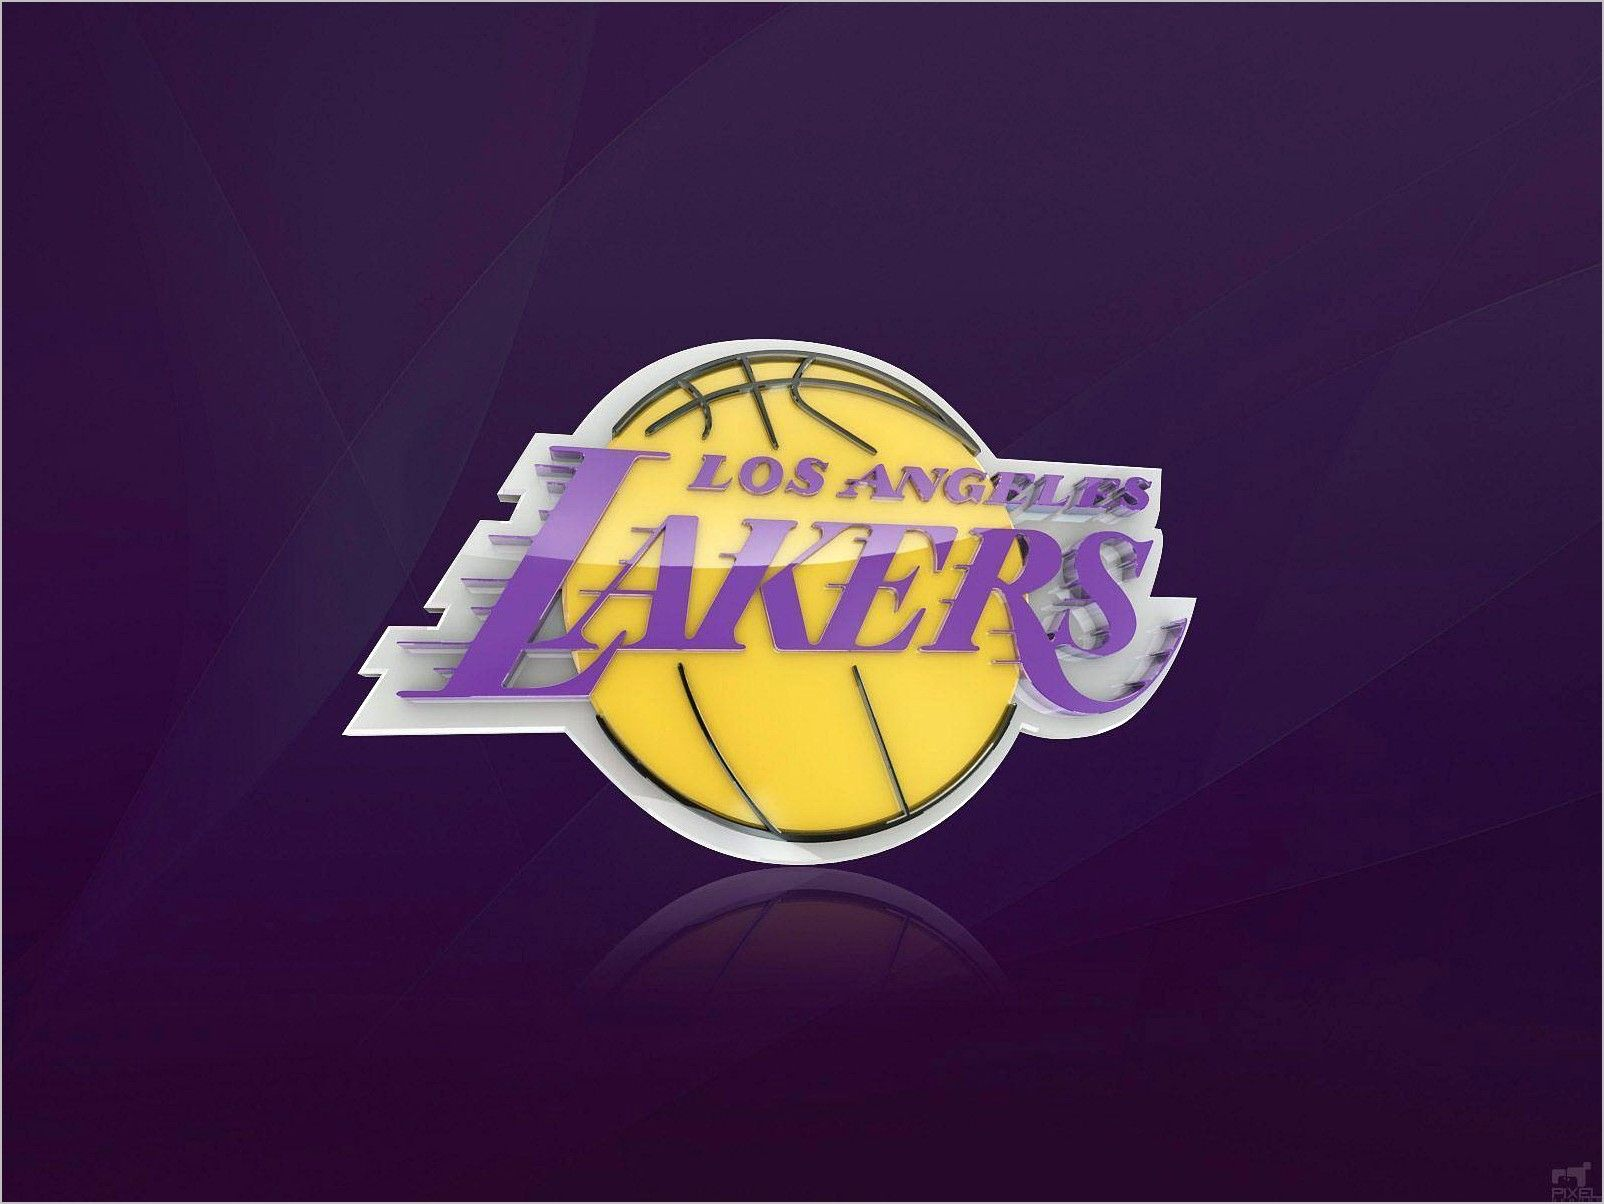 4k Wallpaper For Pc Los Angeles Lakers In 2020 Lakers Wallpaper Los Angeles Lakers Logo Lakers Logo